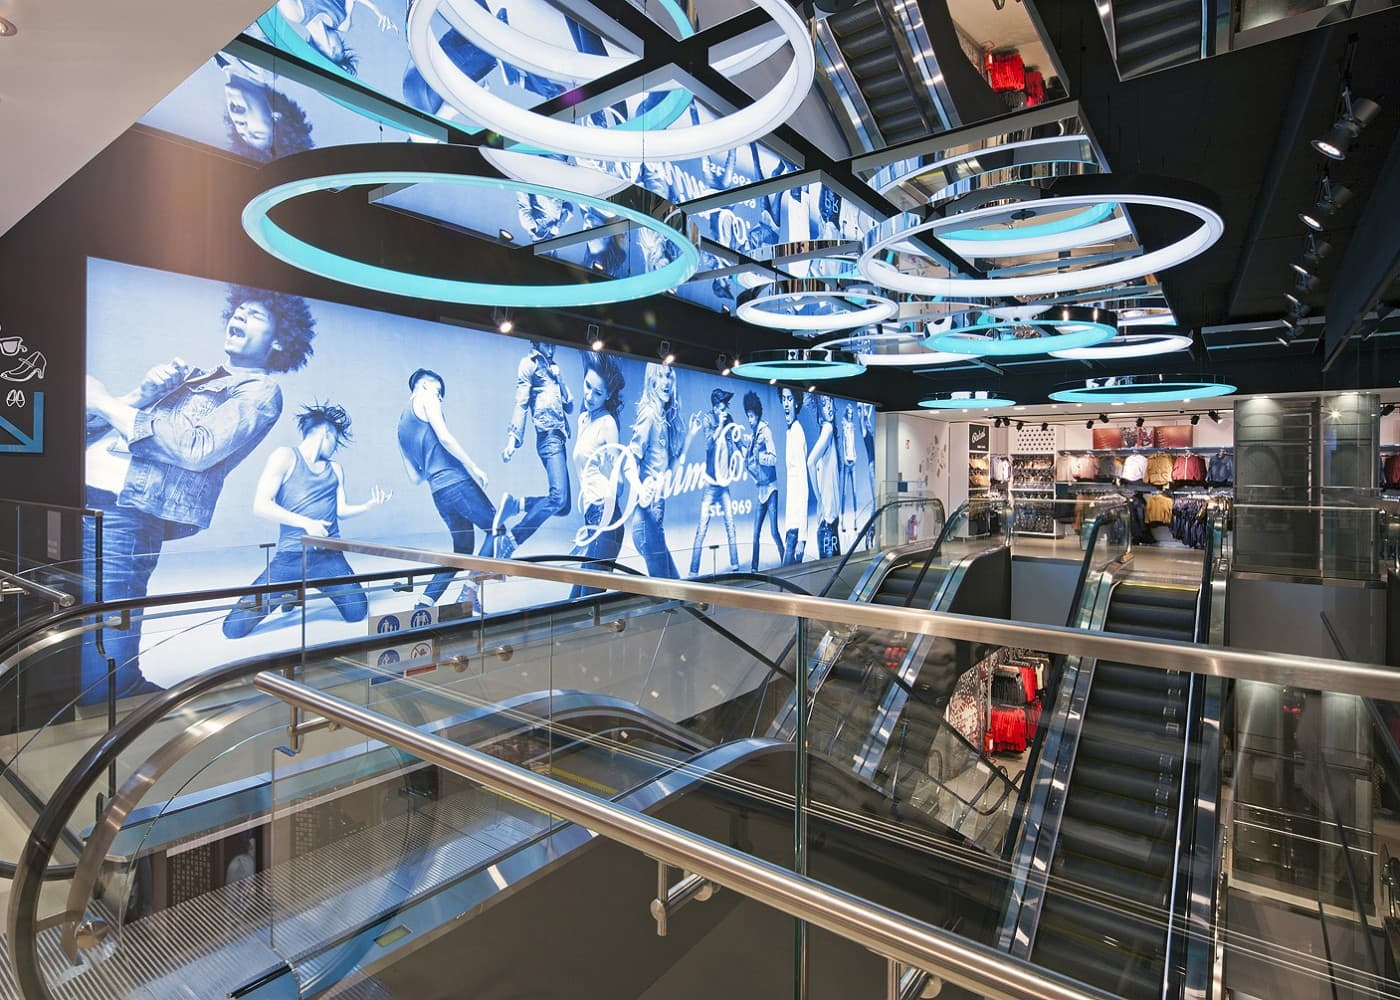 retail lighting design: Primark escalators